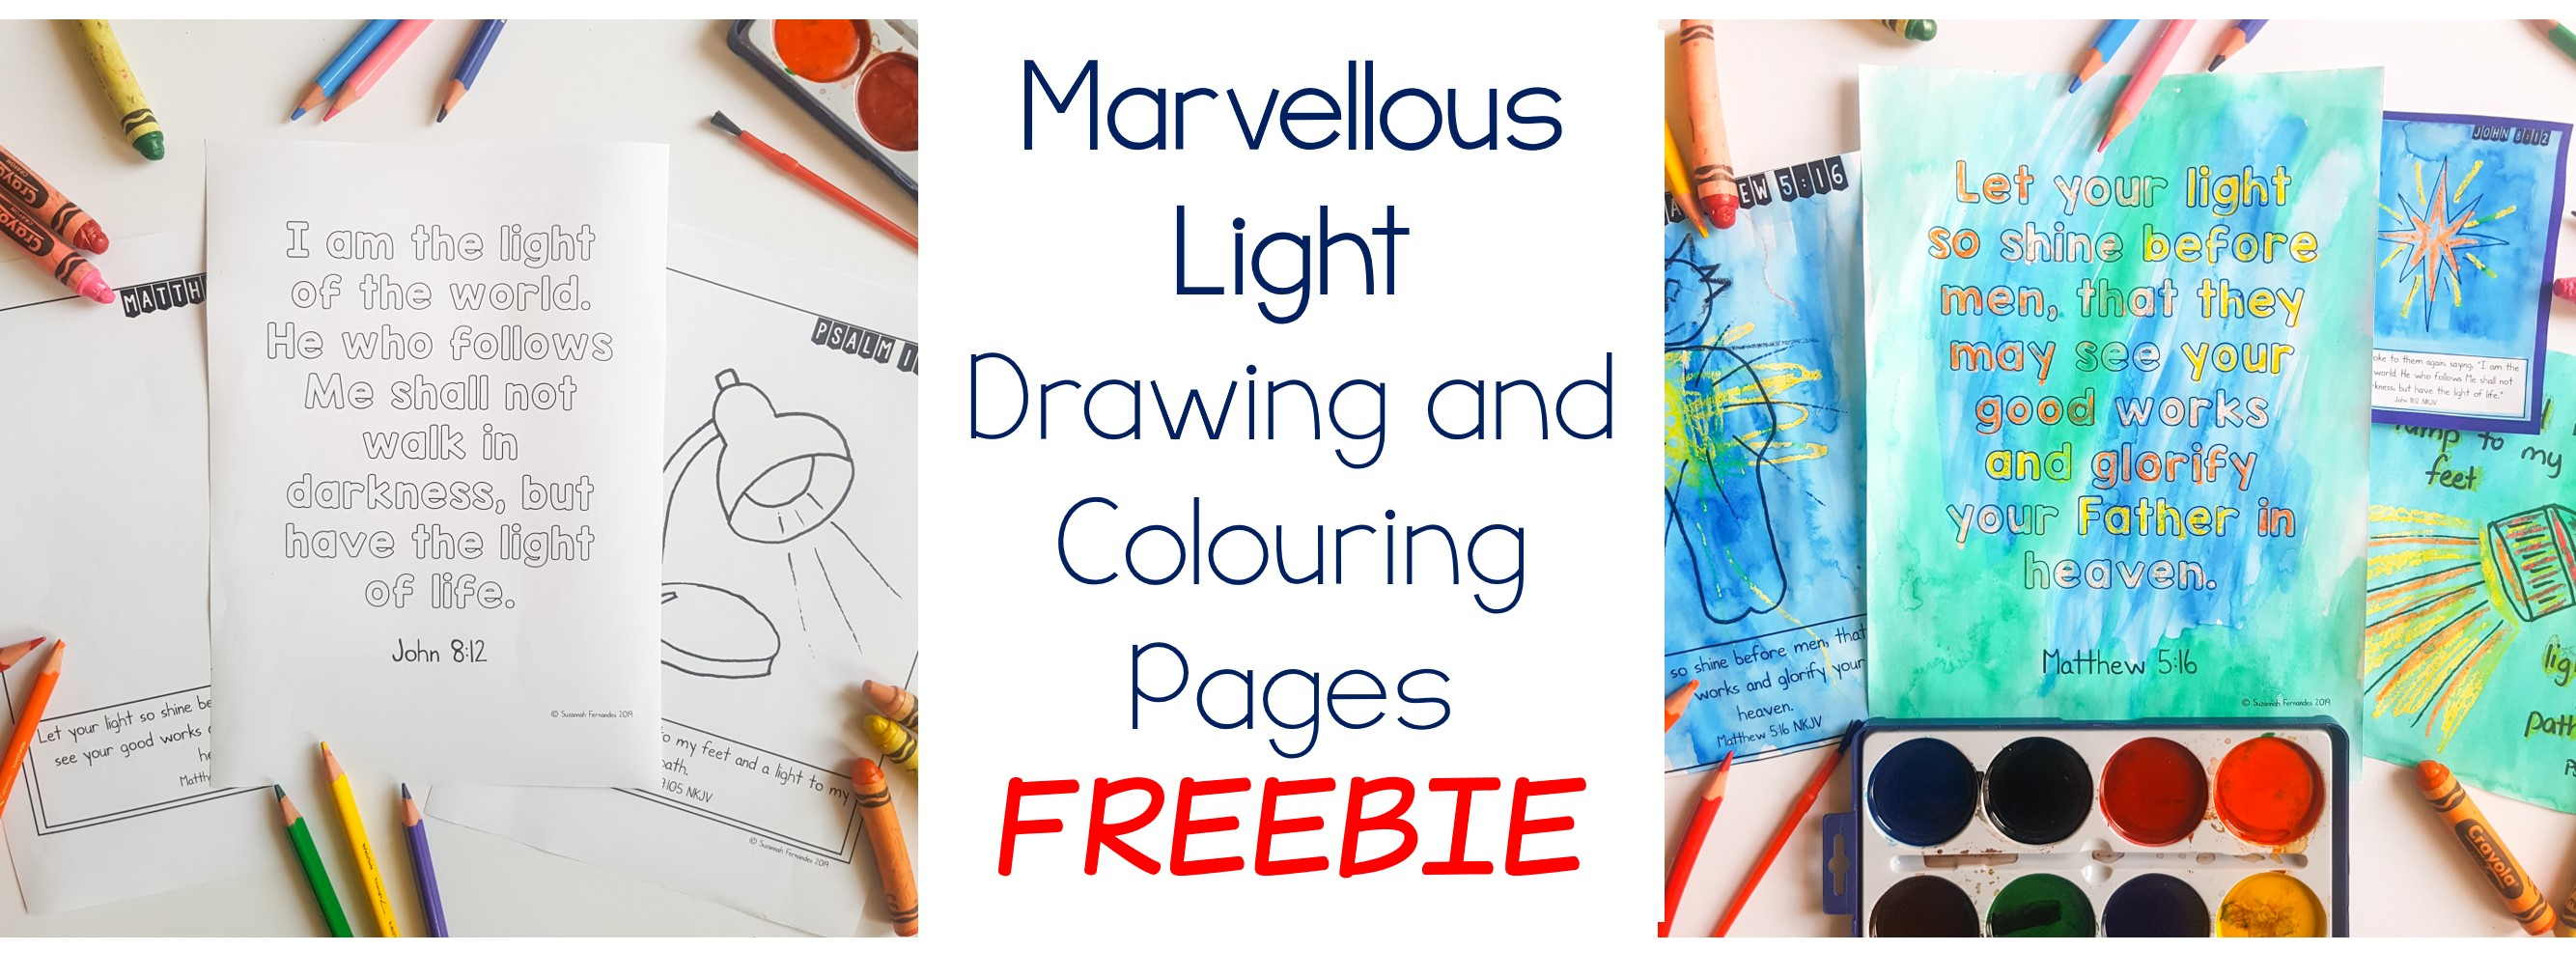 Free God's Light Scriptures – Drawing and colouring pages.